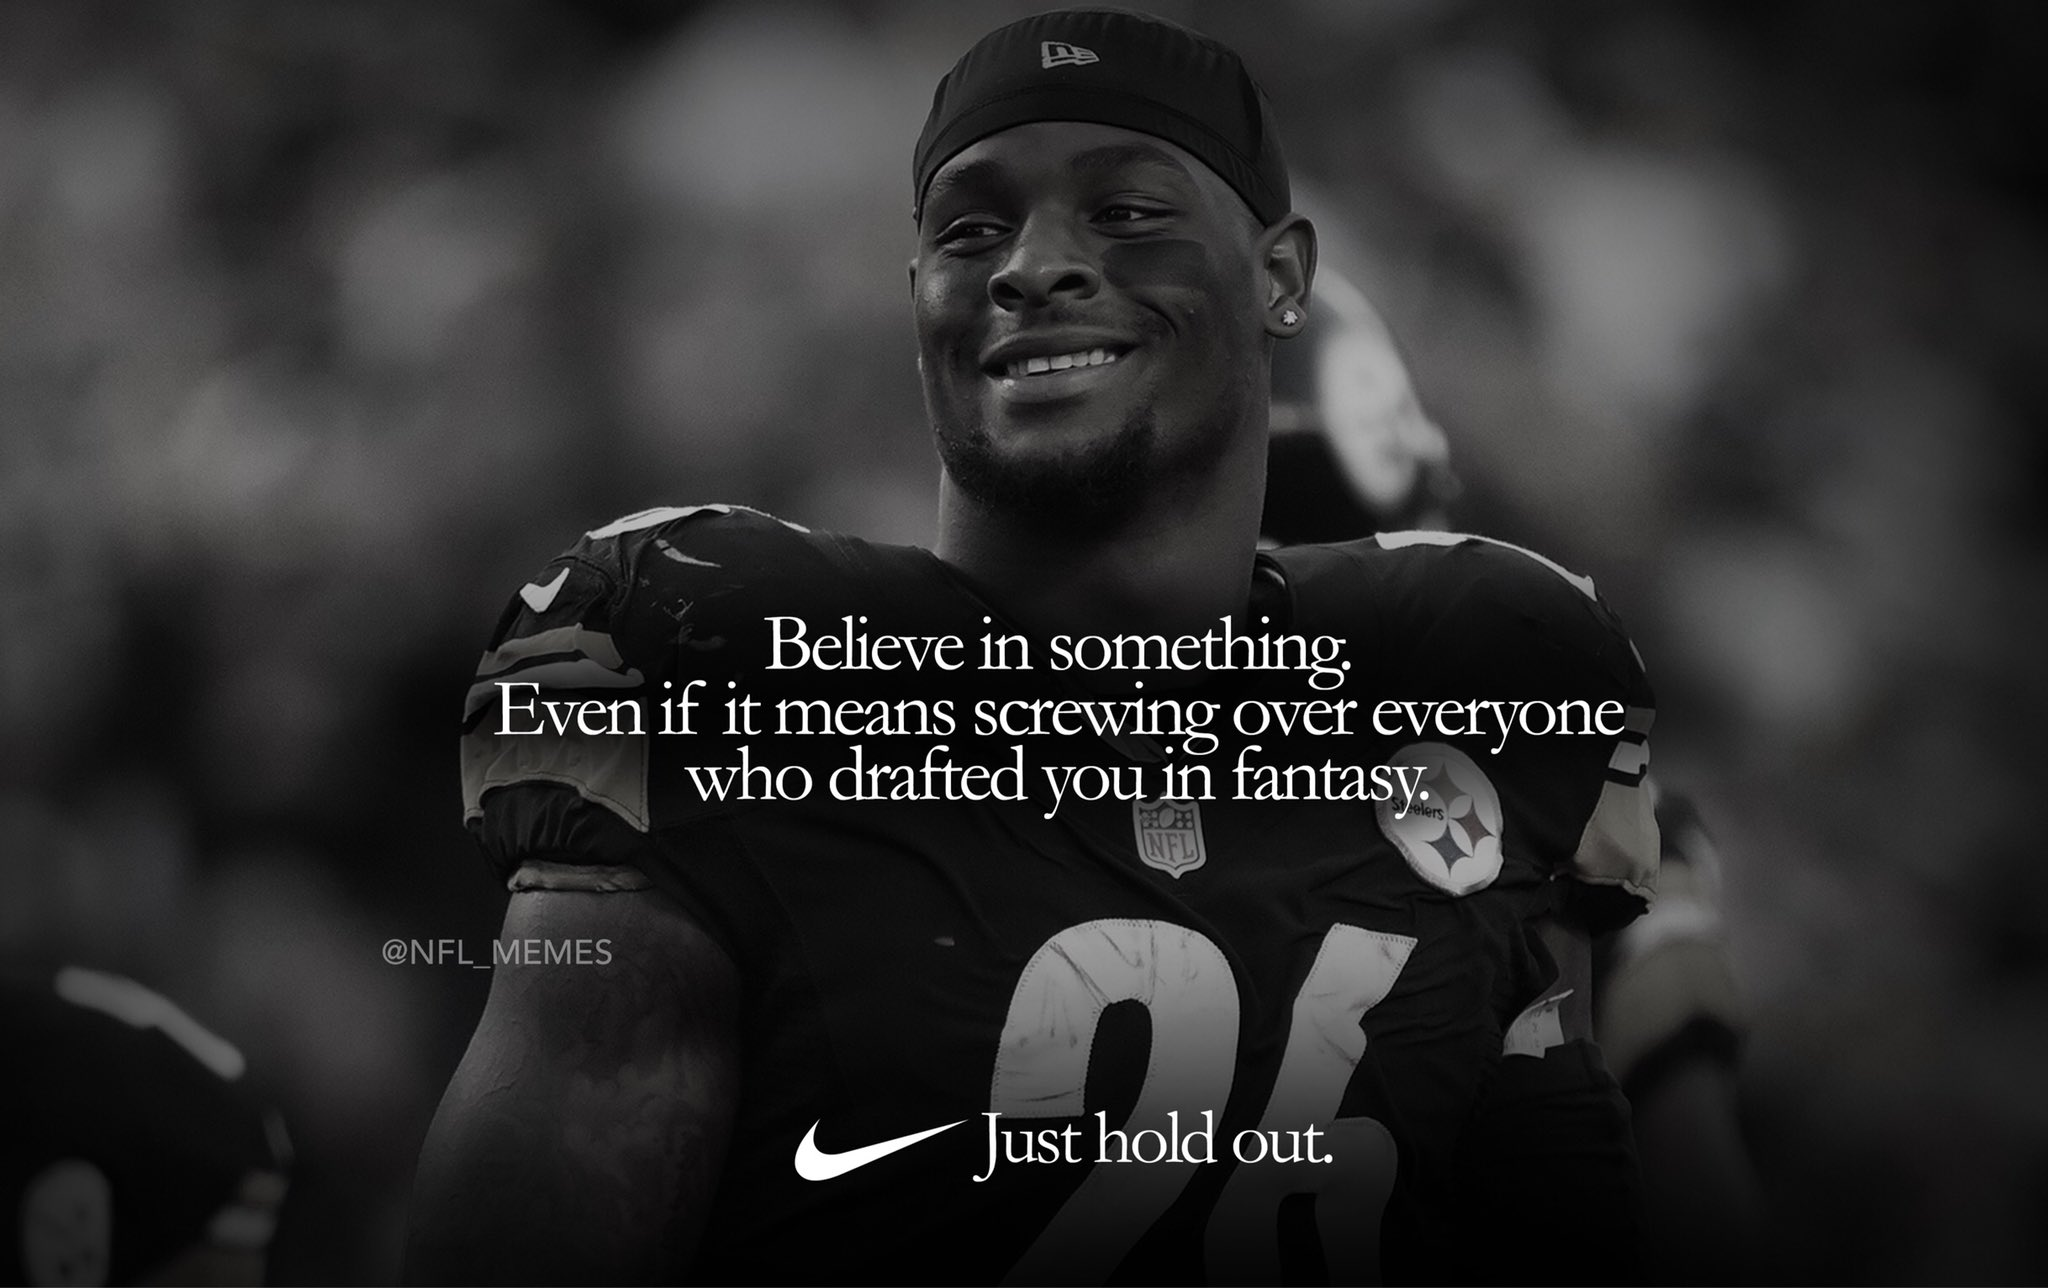 Le'Veon Bell's new Nike ad... https://t.co/96Z1RxZih0